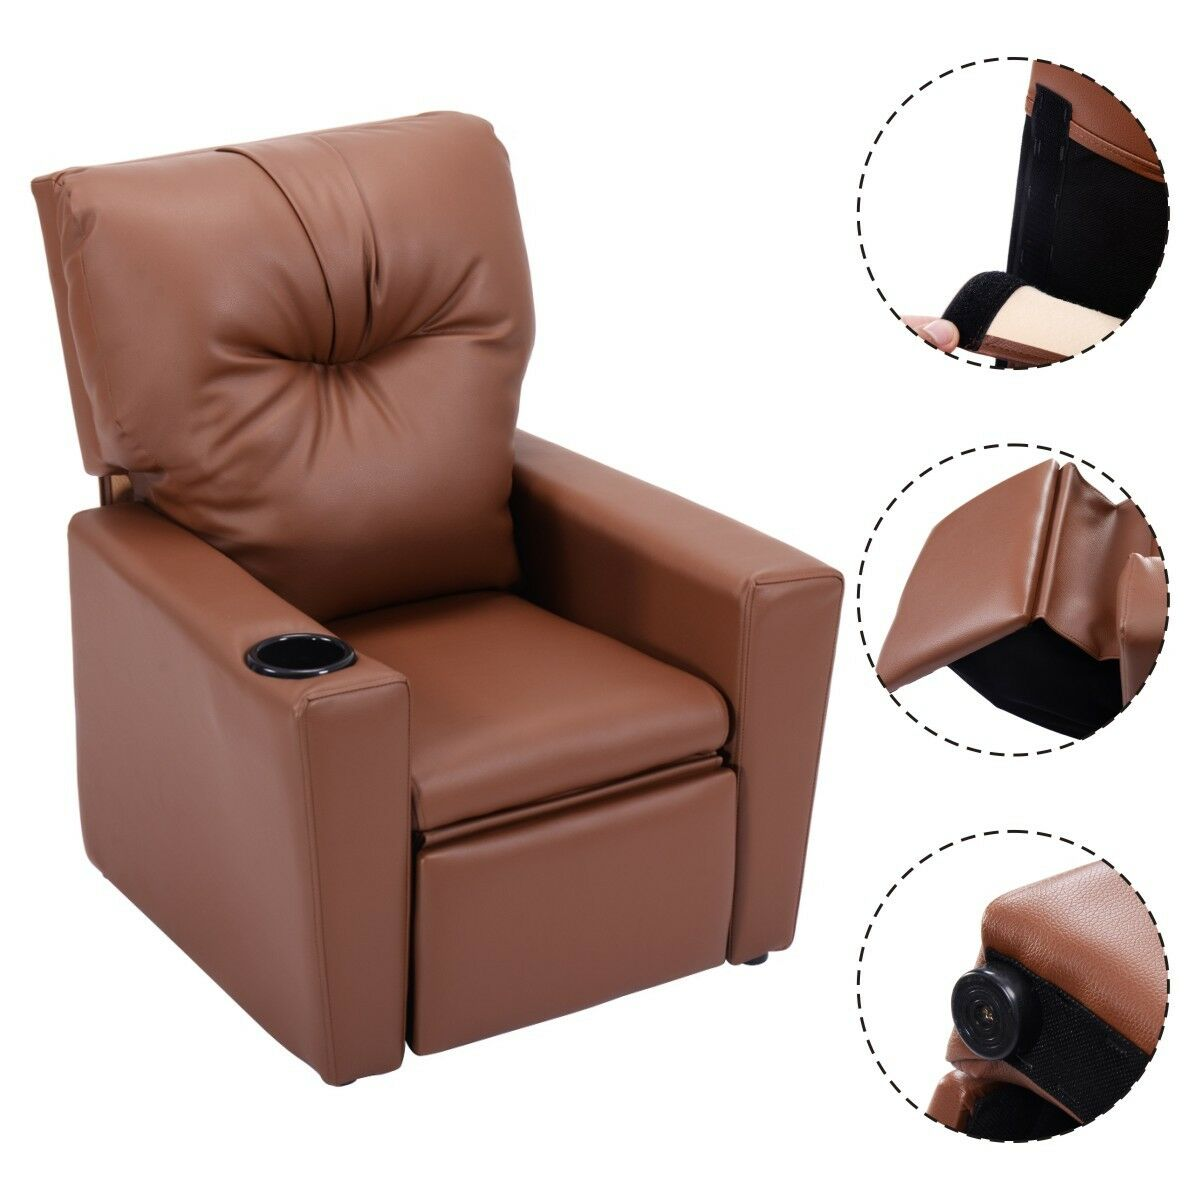 Details About Baby Kids Sofa Recliner Leather Ergonomic Lounge Chair W Cup Holder Furniture Us